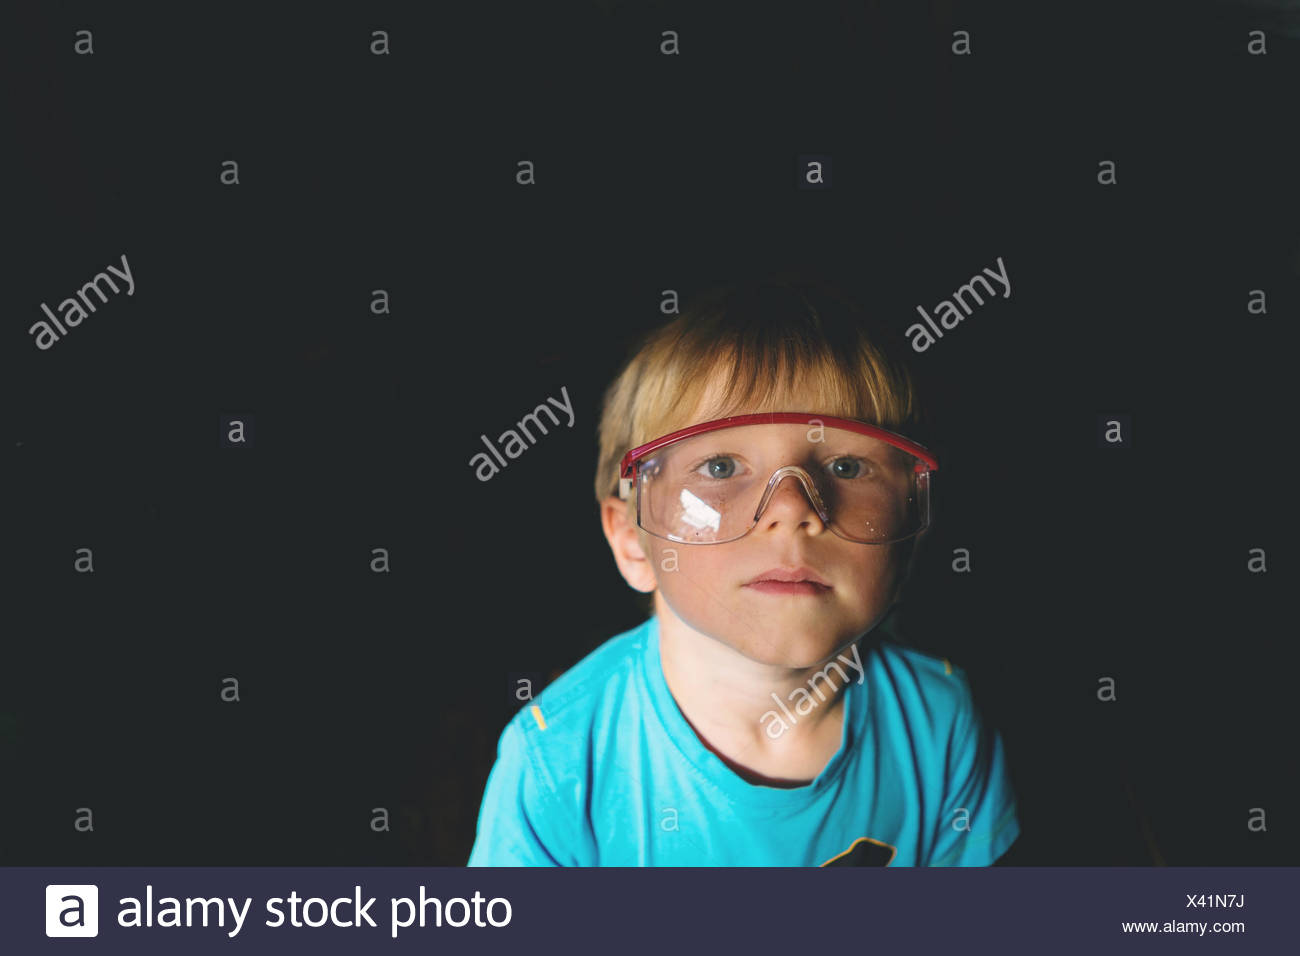 Portrait of boy wearing safety glasses - Stock Image